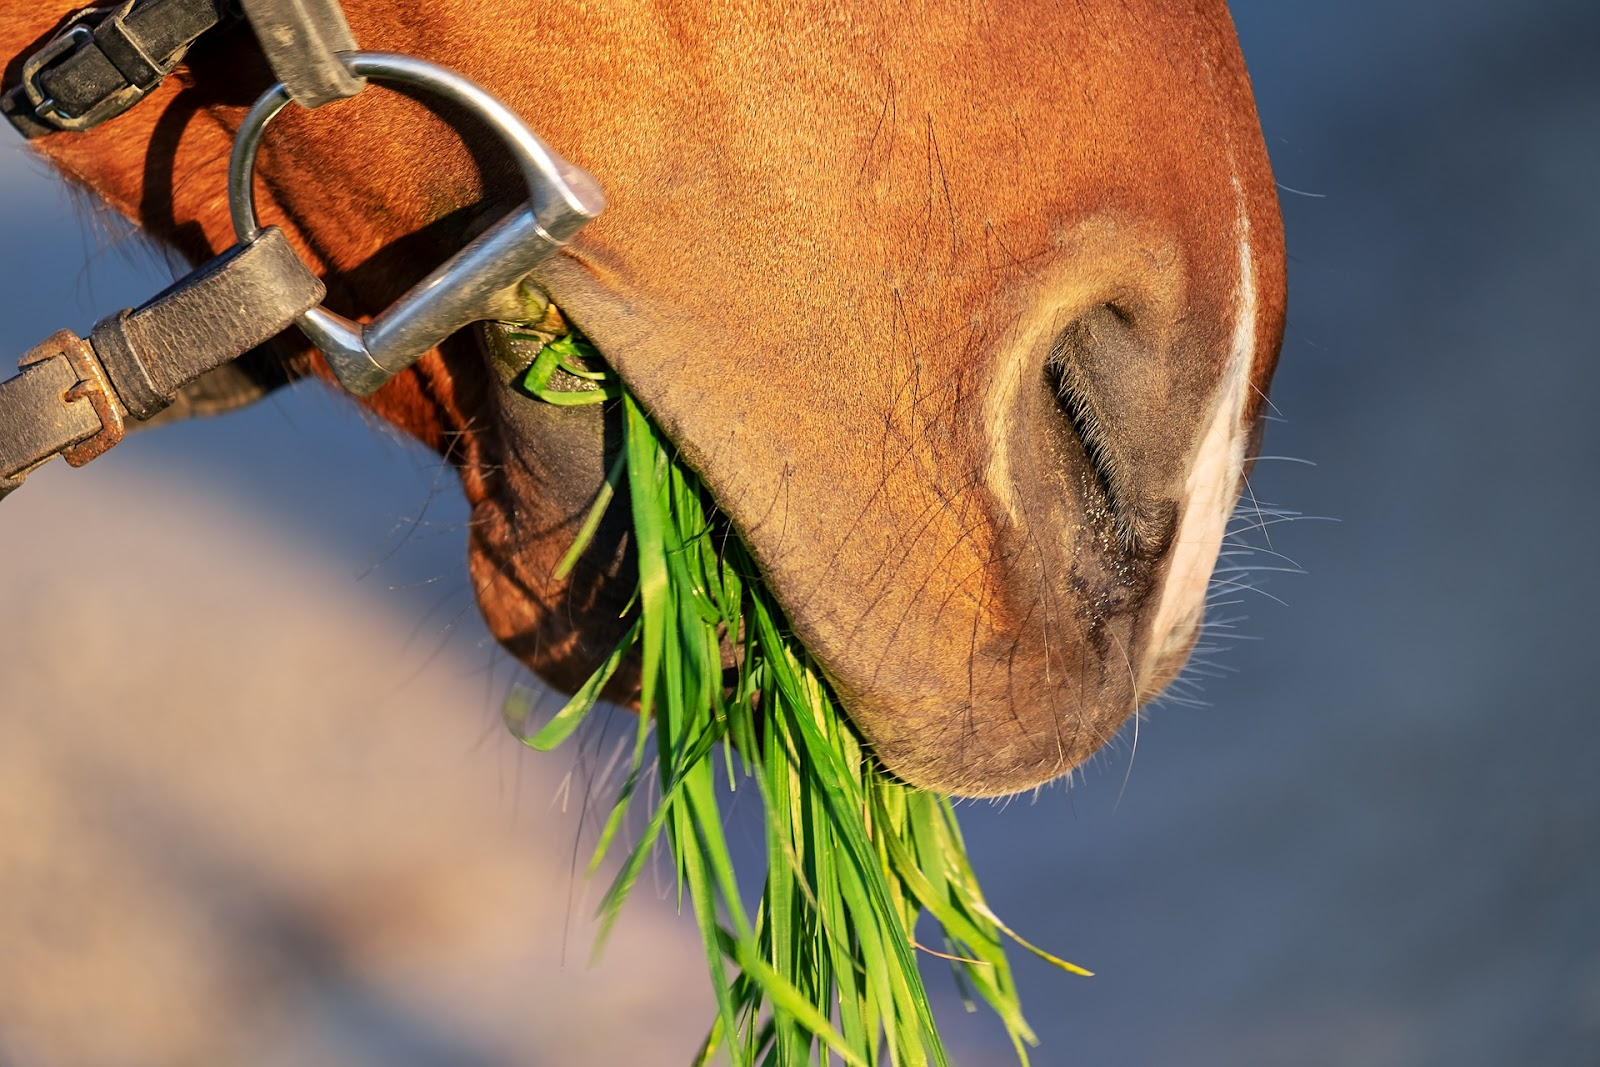 Closeup of a horse eating a mouthful of grass.